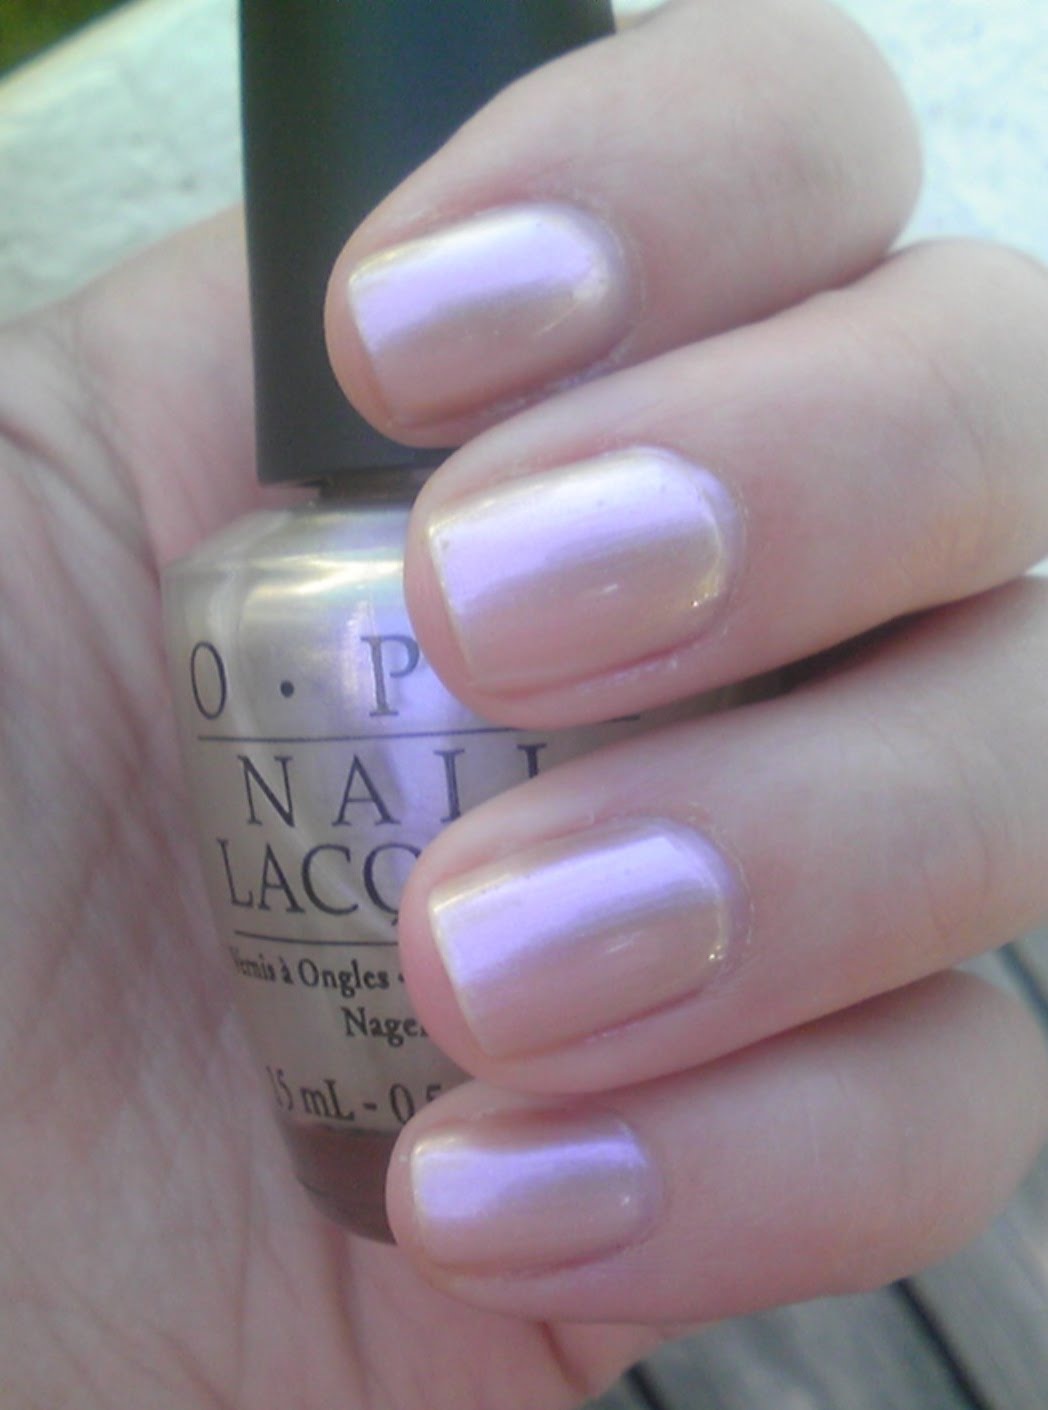 Because Of The Iridescent Nature This Polish It Is Seriously Hard To Capture On Camera In Indirect Light Looks Like Pearls Melted Top Your